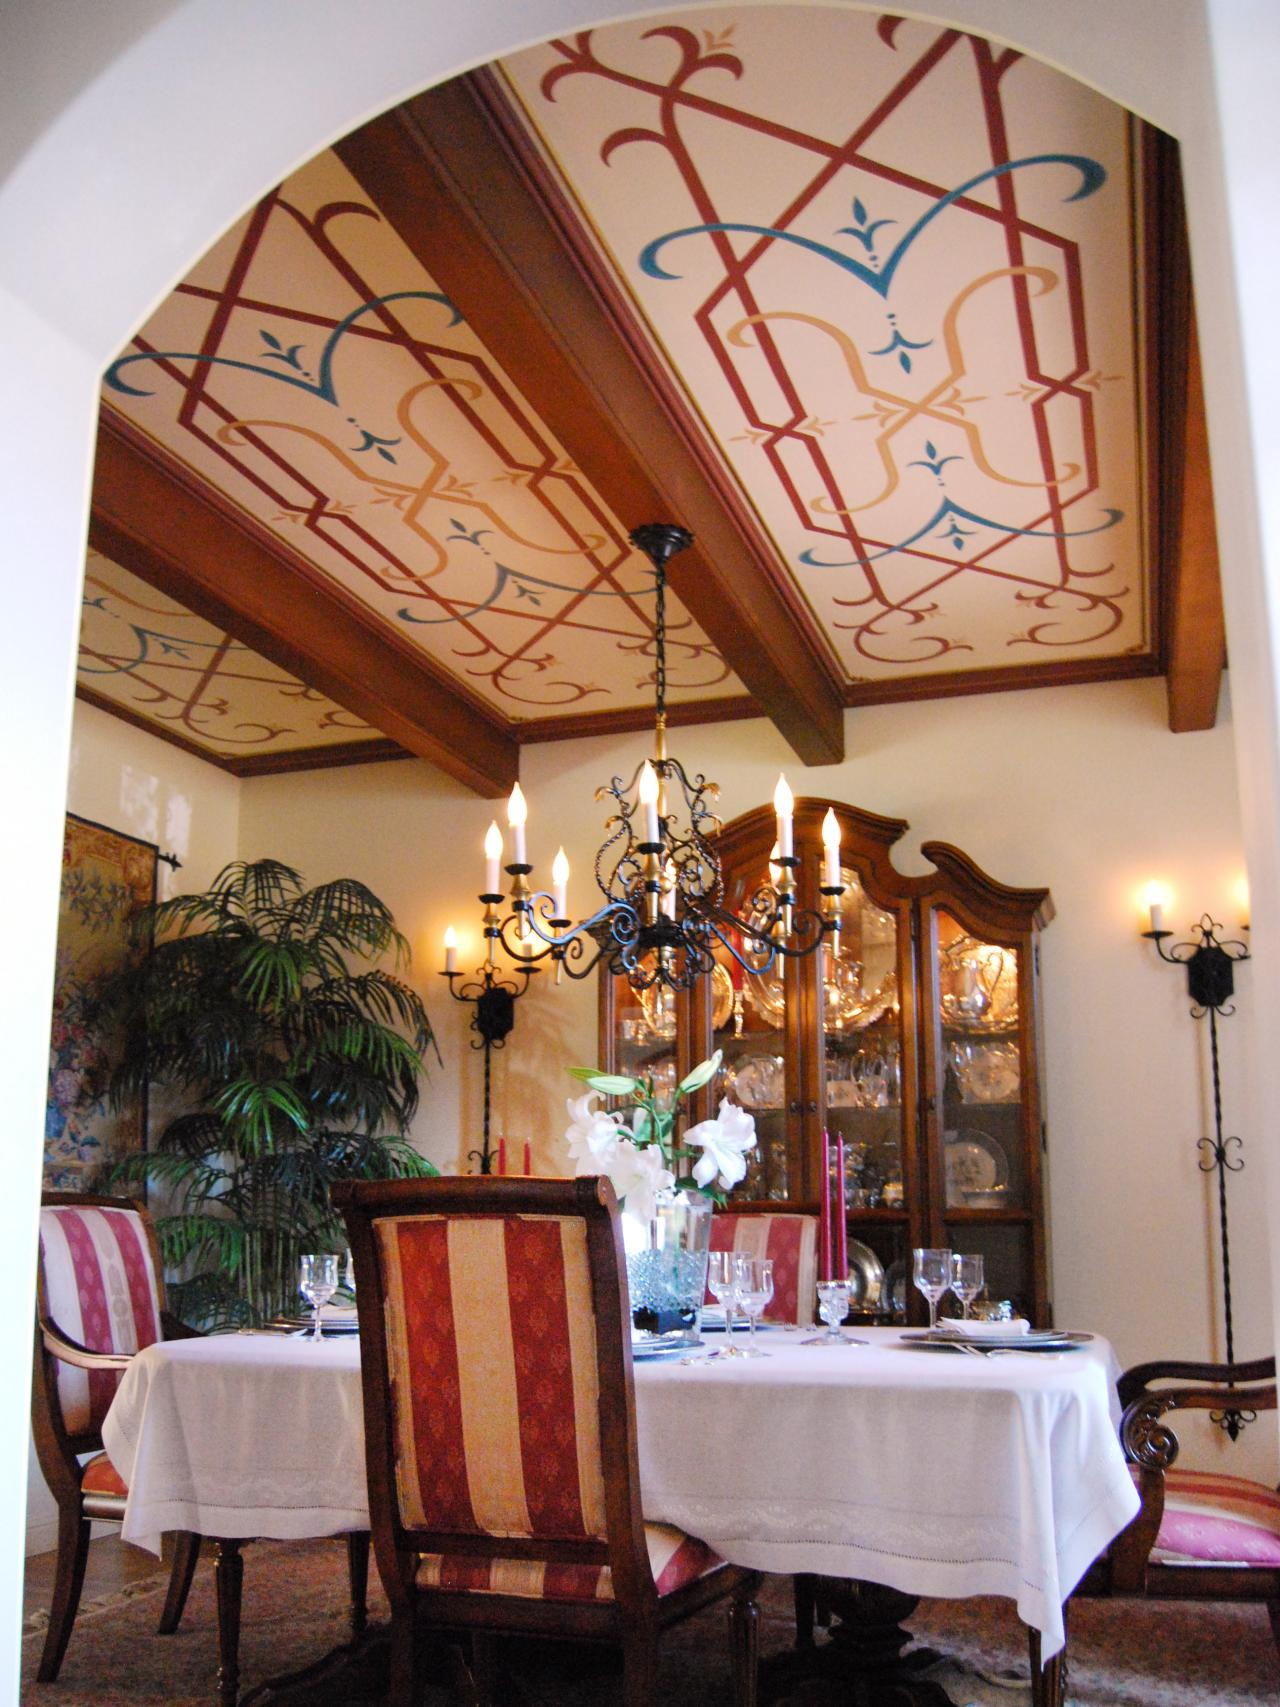 Mediterranean-Dining-Room-With-Decorated-Ceiling